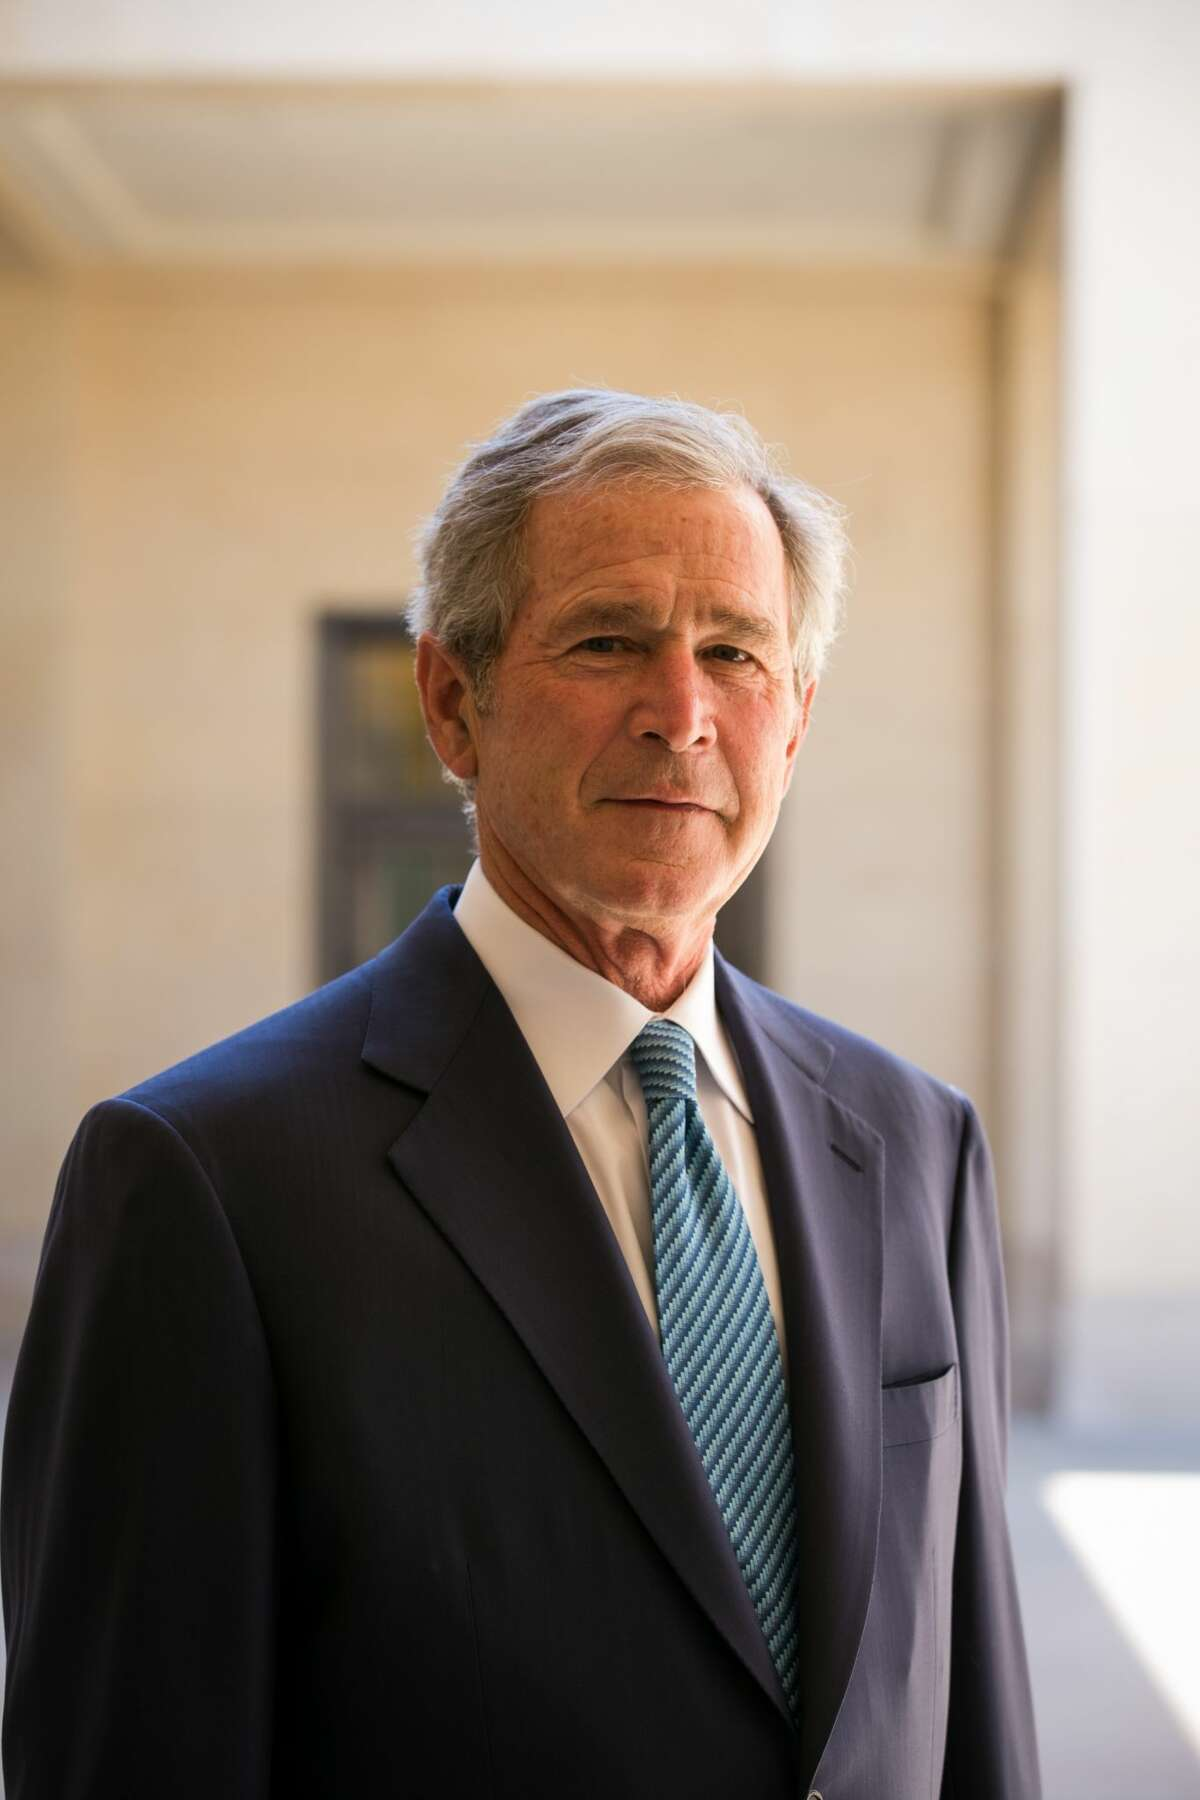 The Junior League of Midland announced Wednesday that Former President George W. Bush will return to his former hometown for the luncheon.